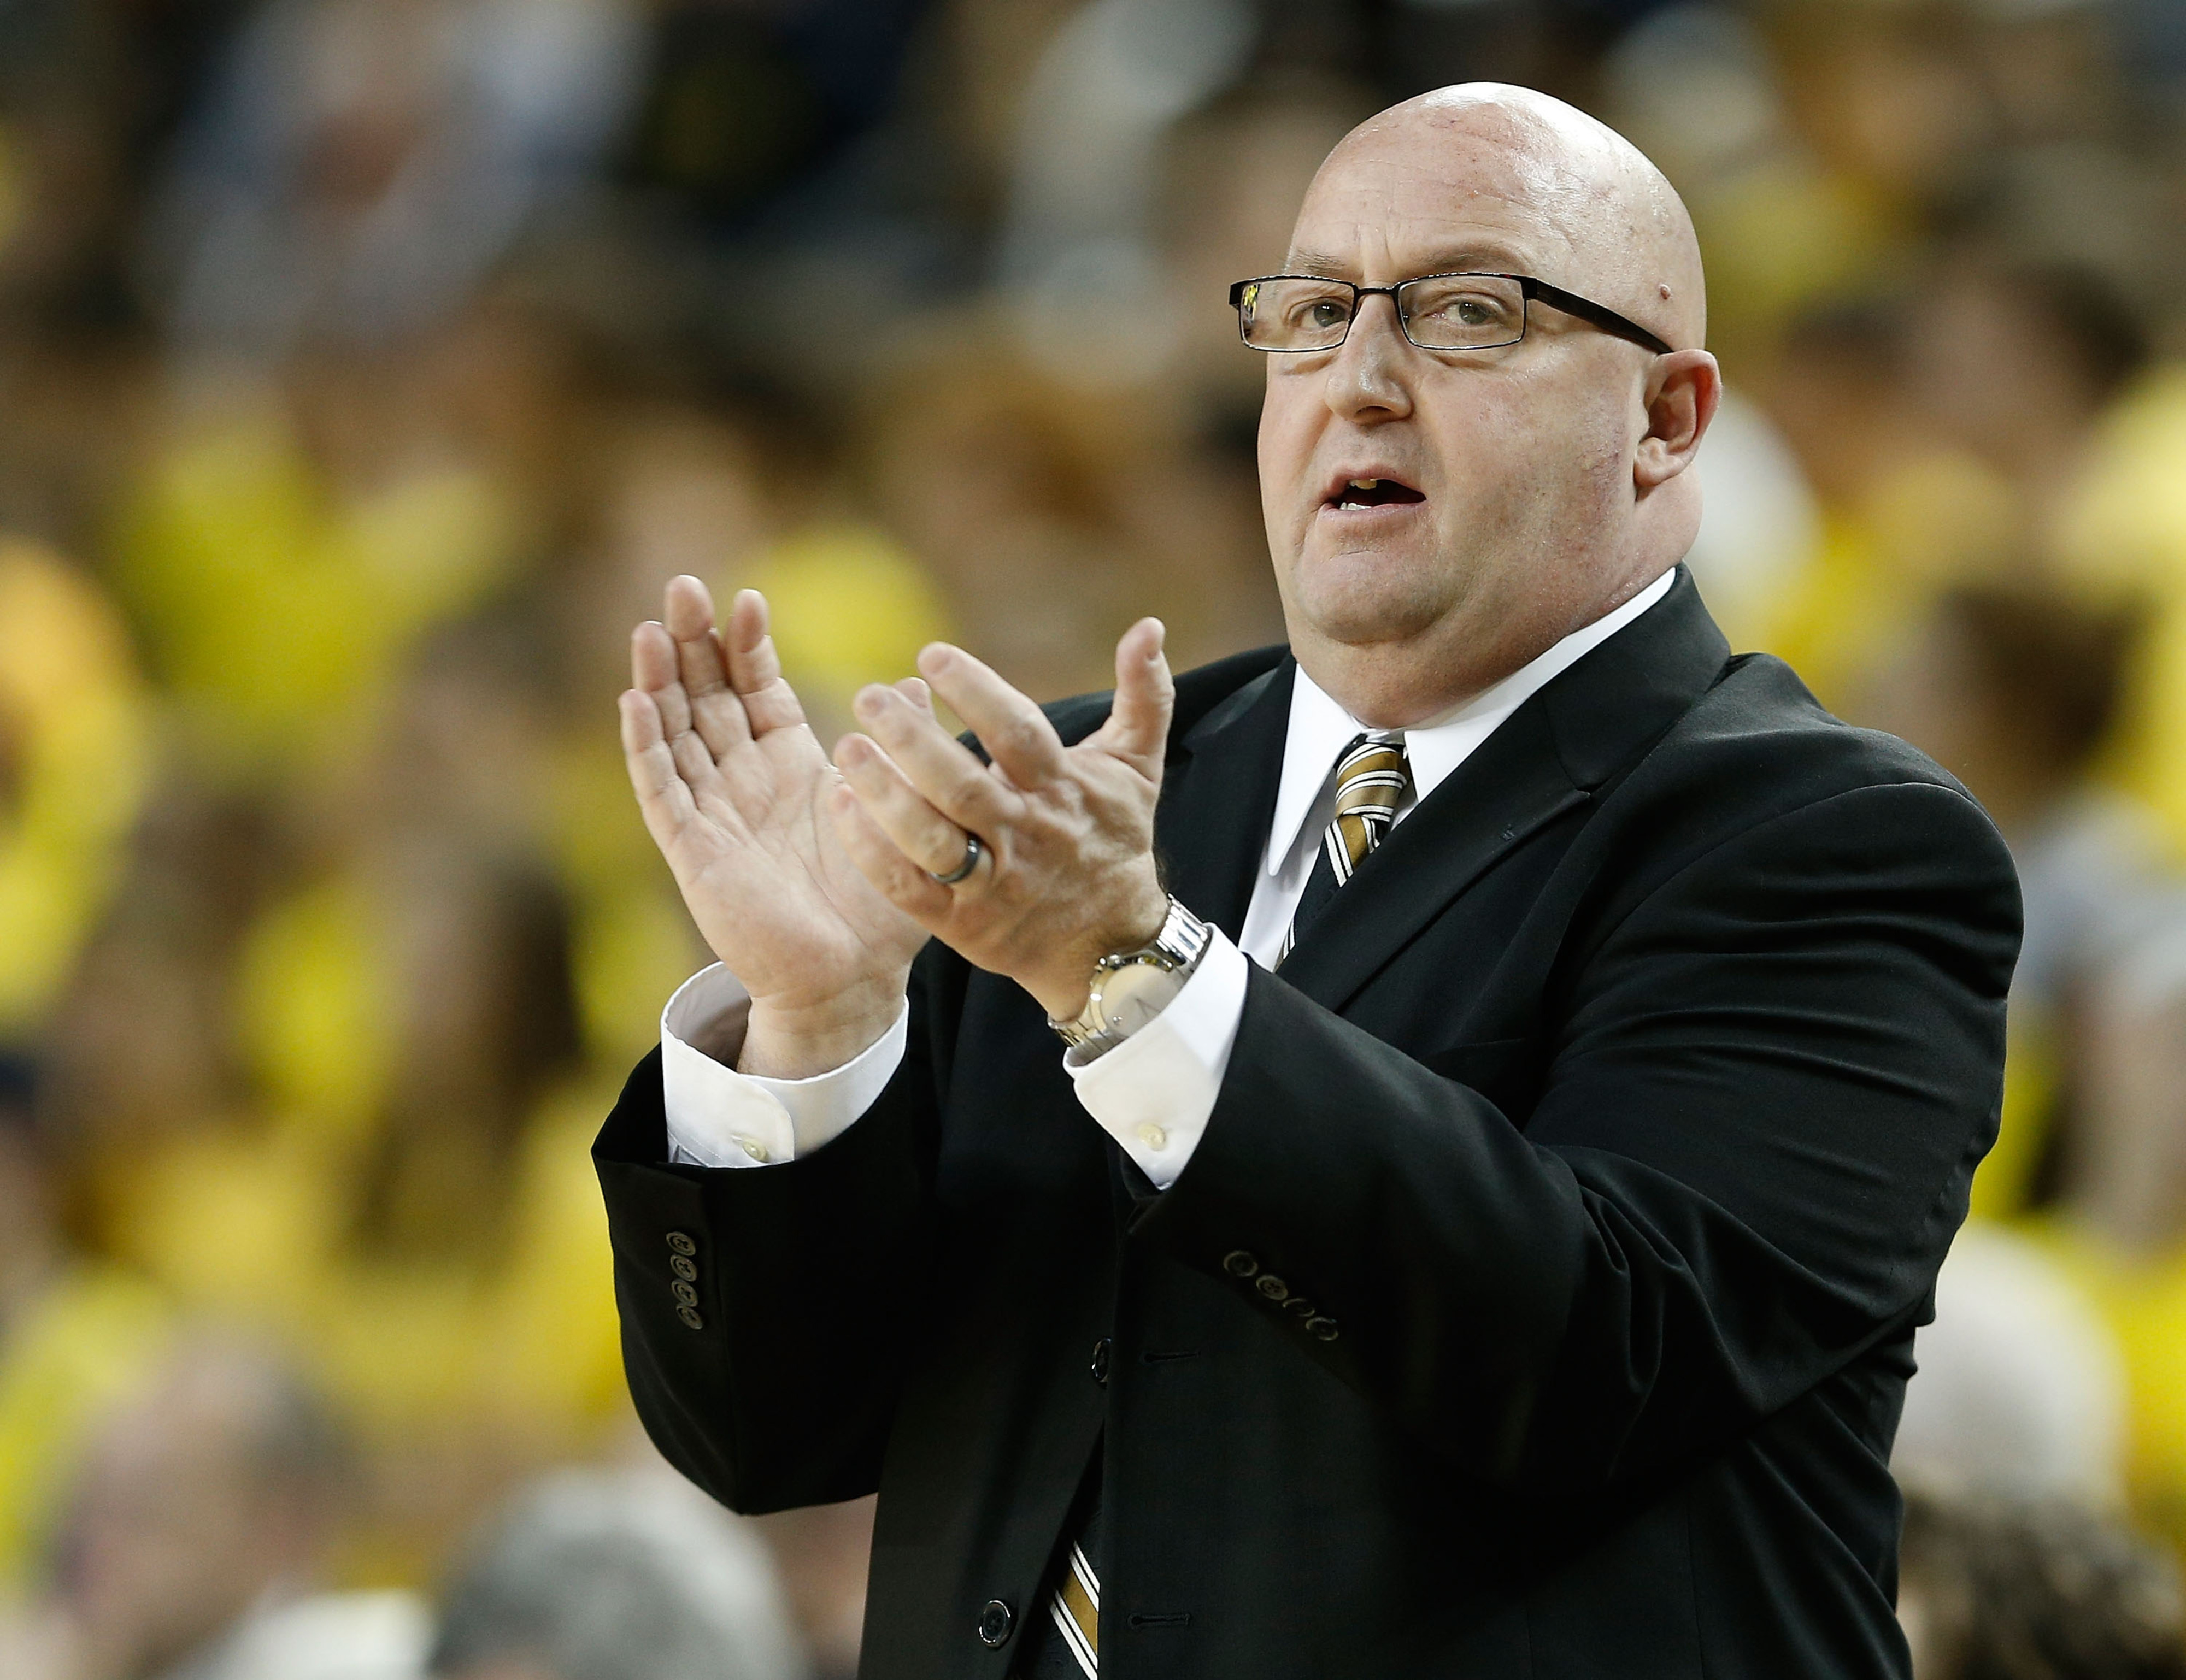 Will Coach Mack be able to get more from Matt Stainbrook than Coach Hawkins could?